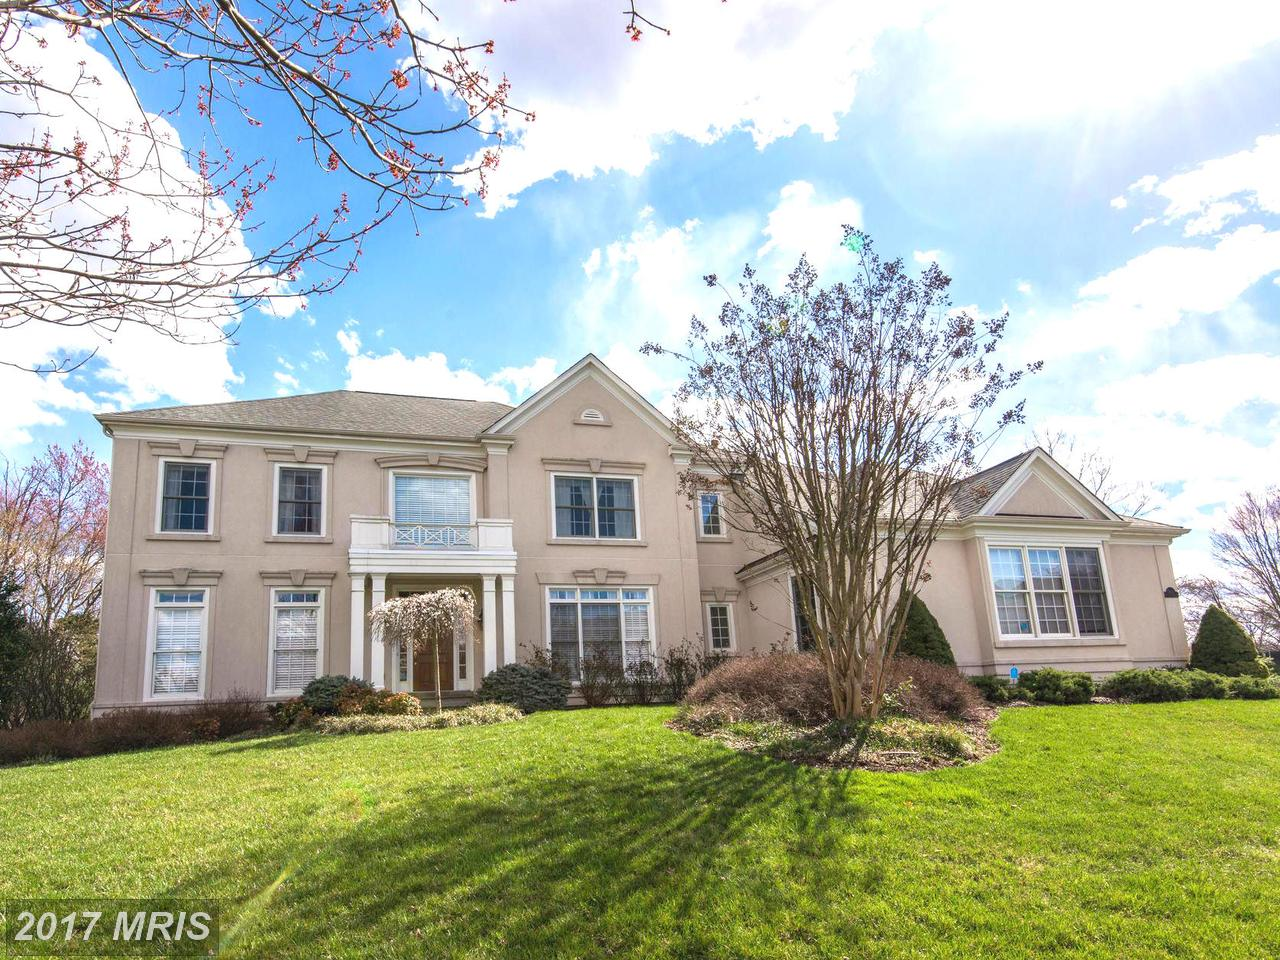 Single Family Home for Sale at Colonial, Detached - MCLEAN, VA 1423 MAYHURST BLVD McLean, Virginia,22102 United States